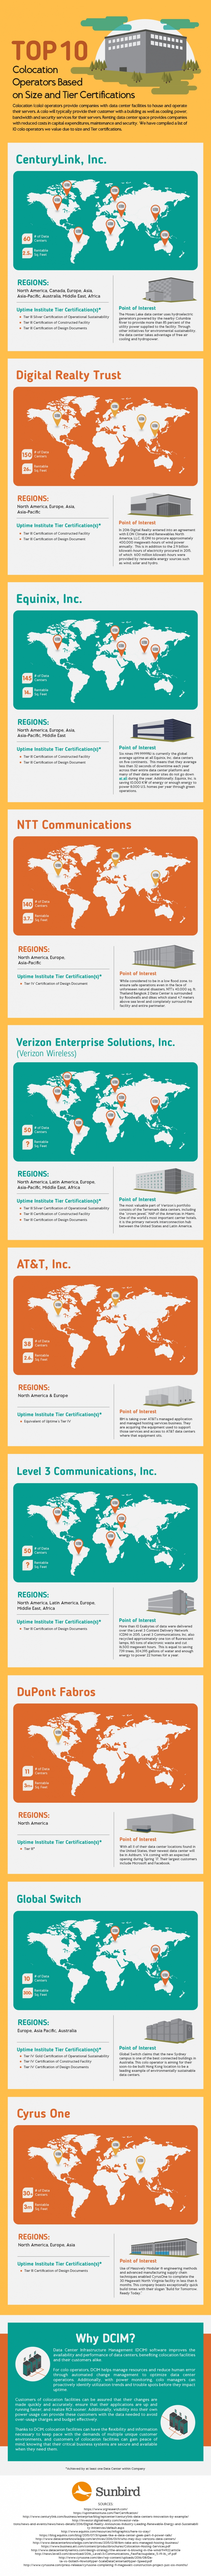 Data Center Colocation Infographic Sunbird